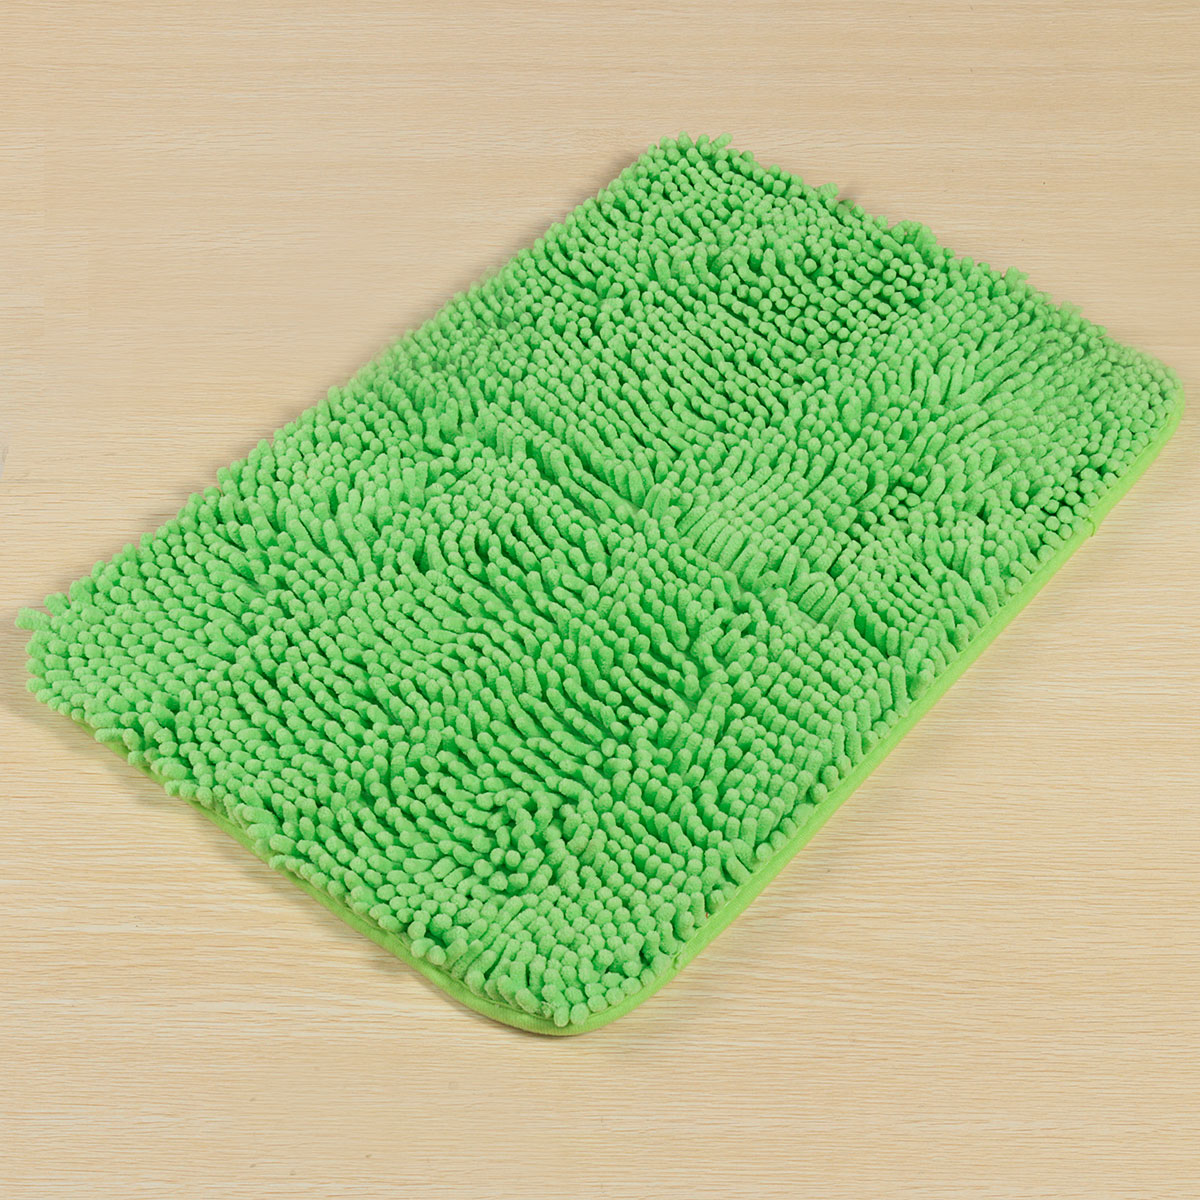 Washable Bedroom Floor Mat Shaggy Rugs Non-Slip Pad Thick